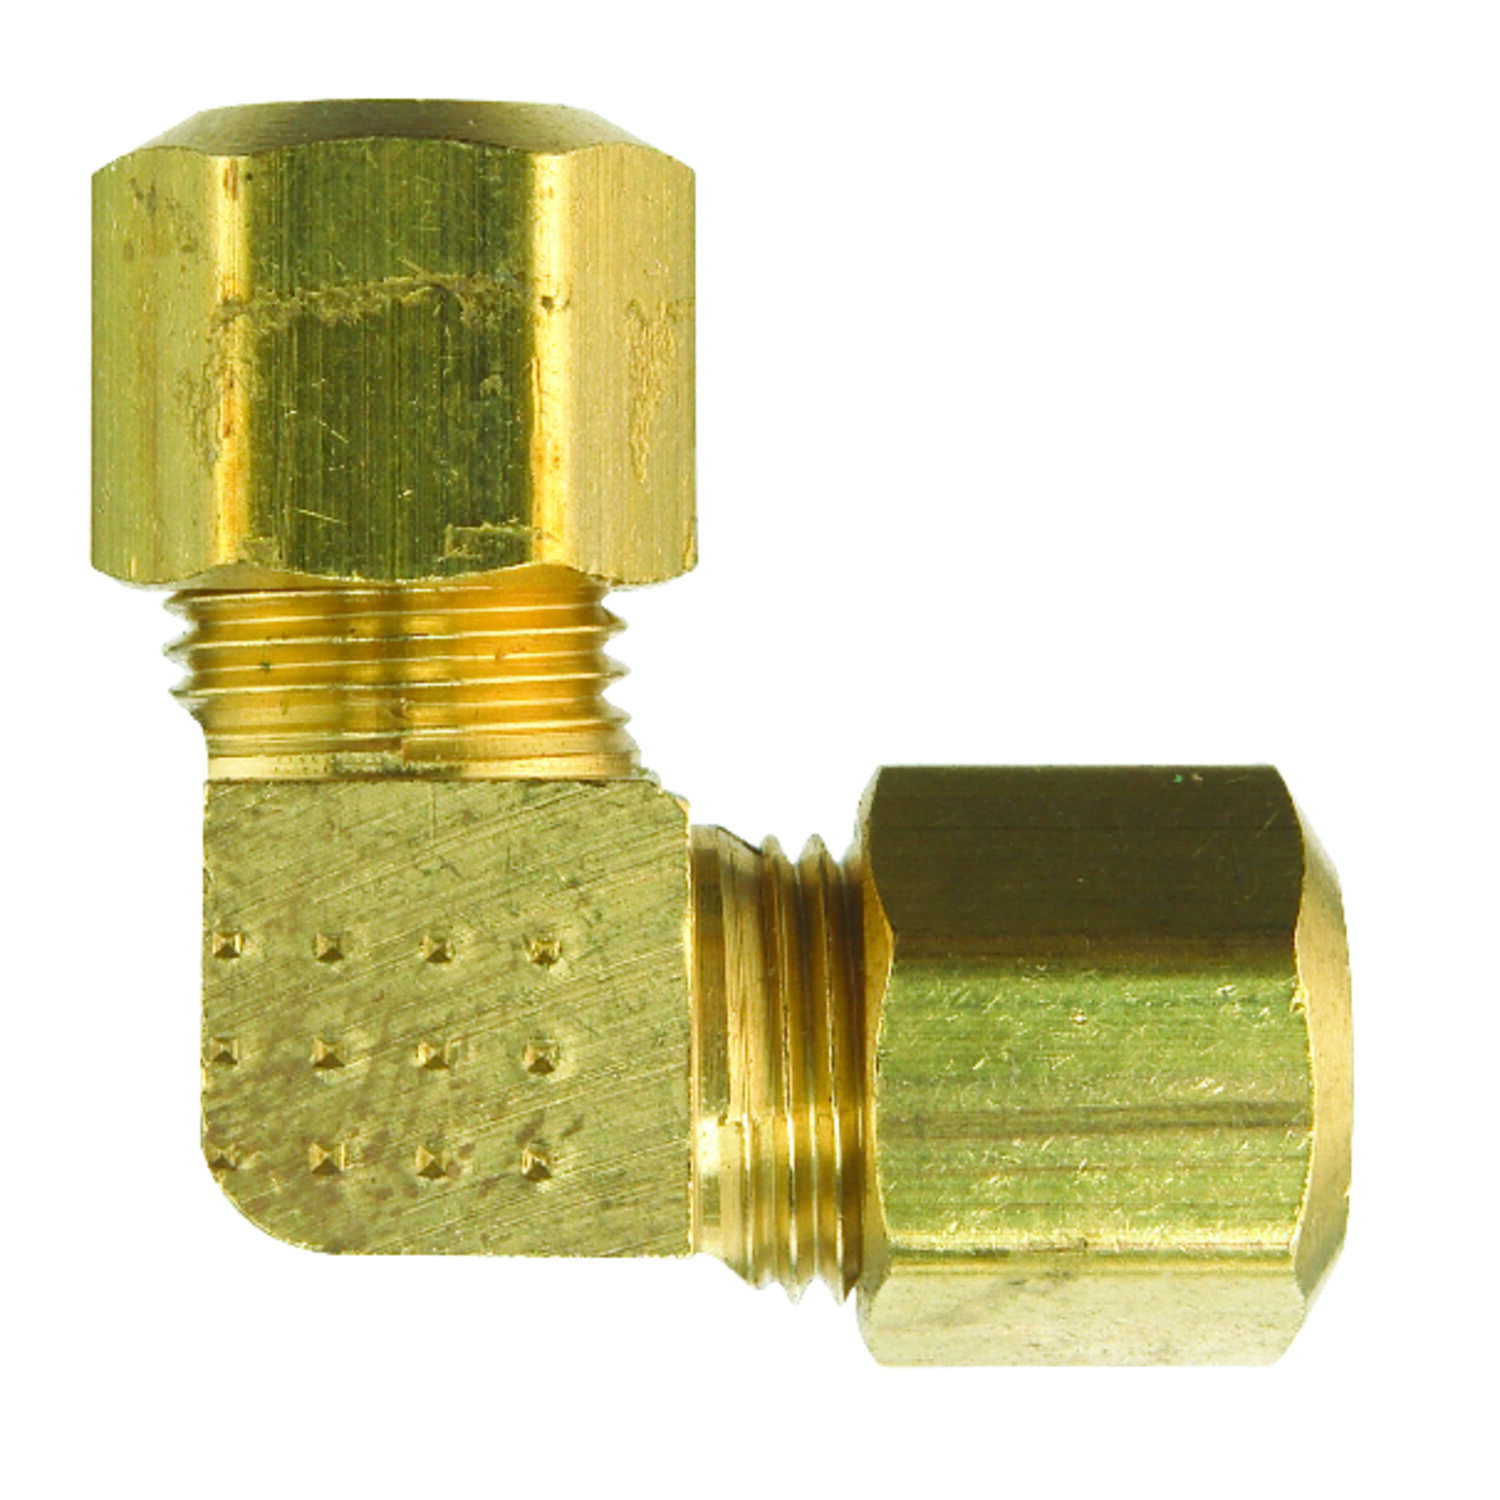 JMF  1/4 in. Compression   x 1/4 in. Dia. Compression  Yellow Brass  Elbow